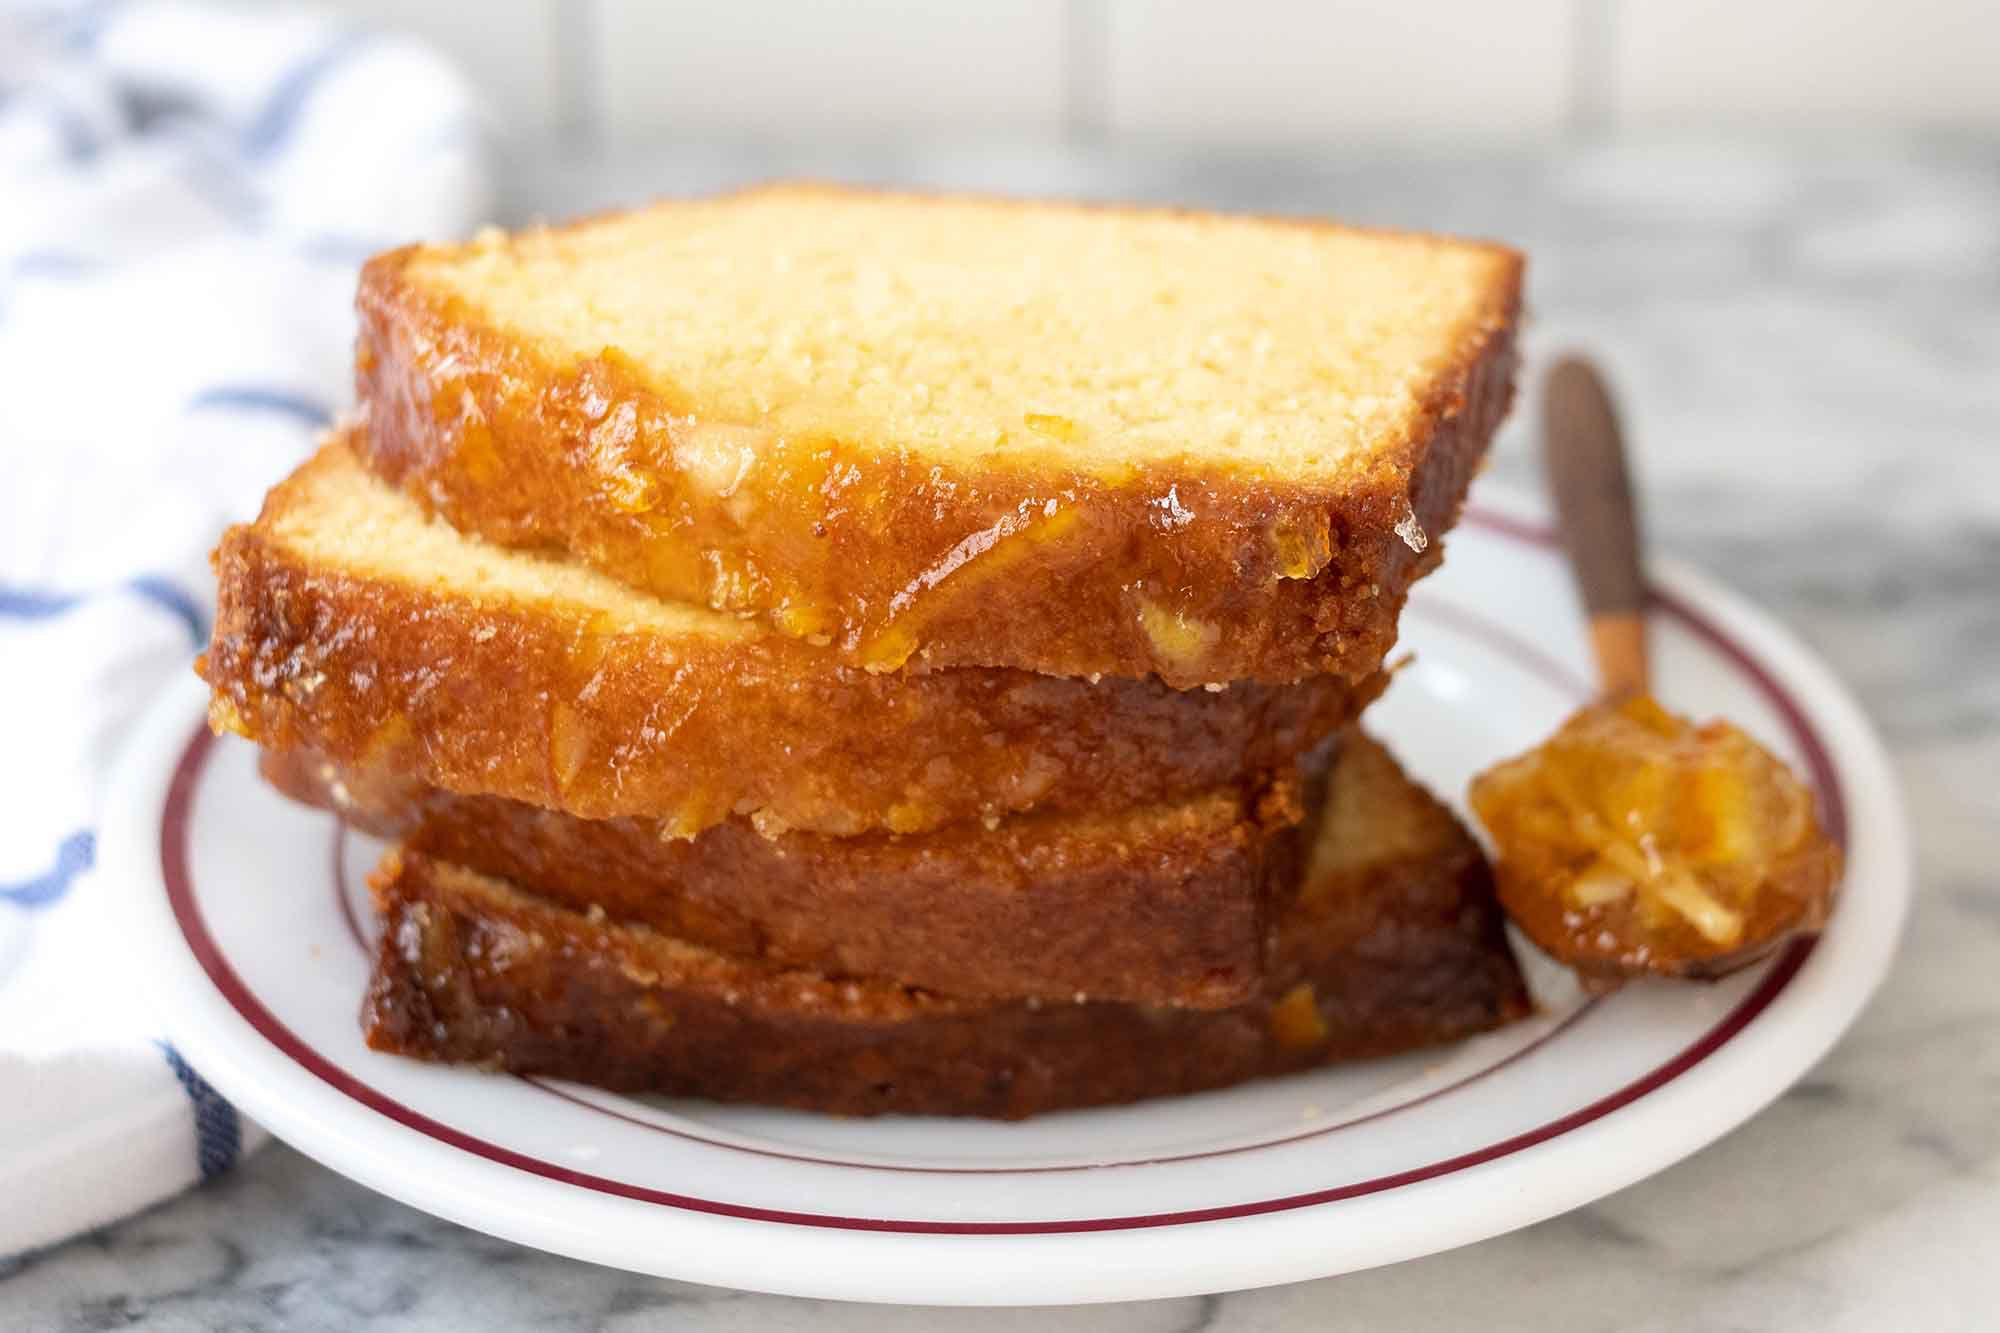 Stacked slices of Marmalade Loaf Cake